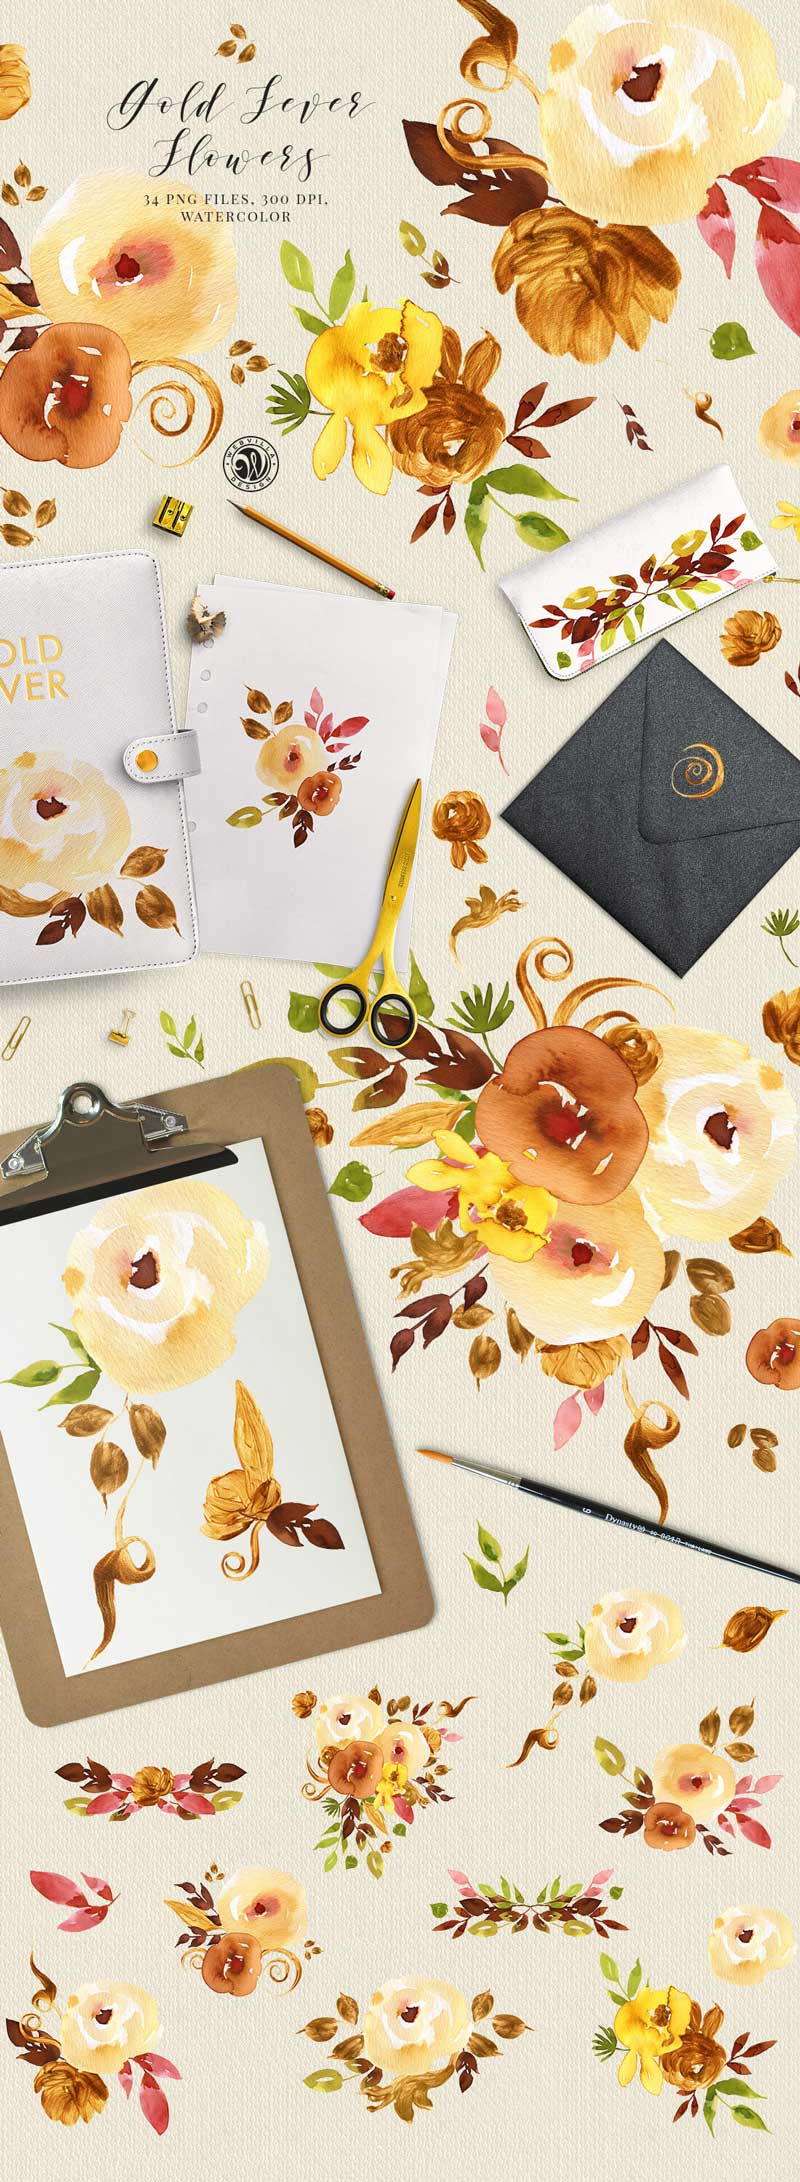 Gold-Fever-Flowers-34-PNG-Files-Watercolor